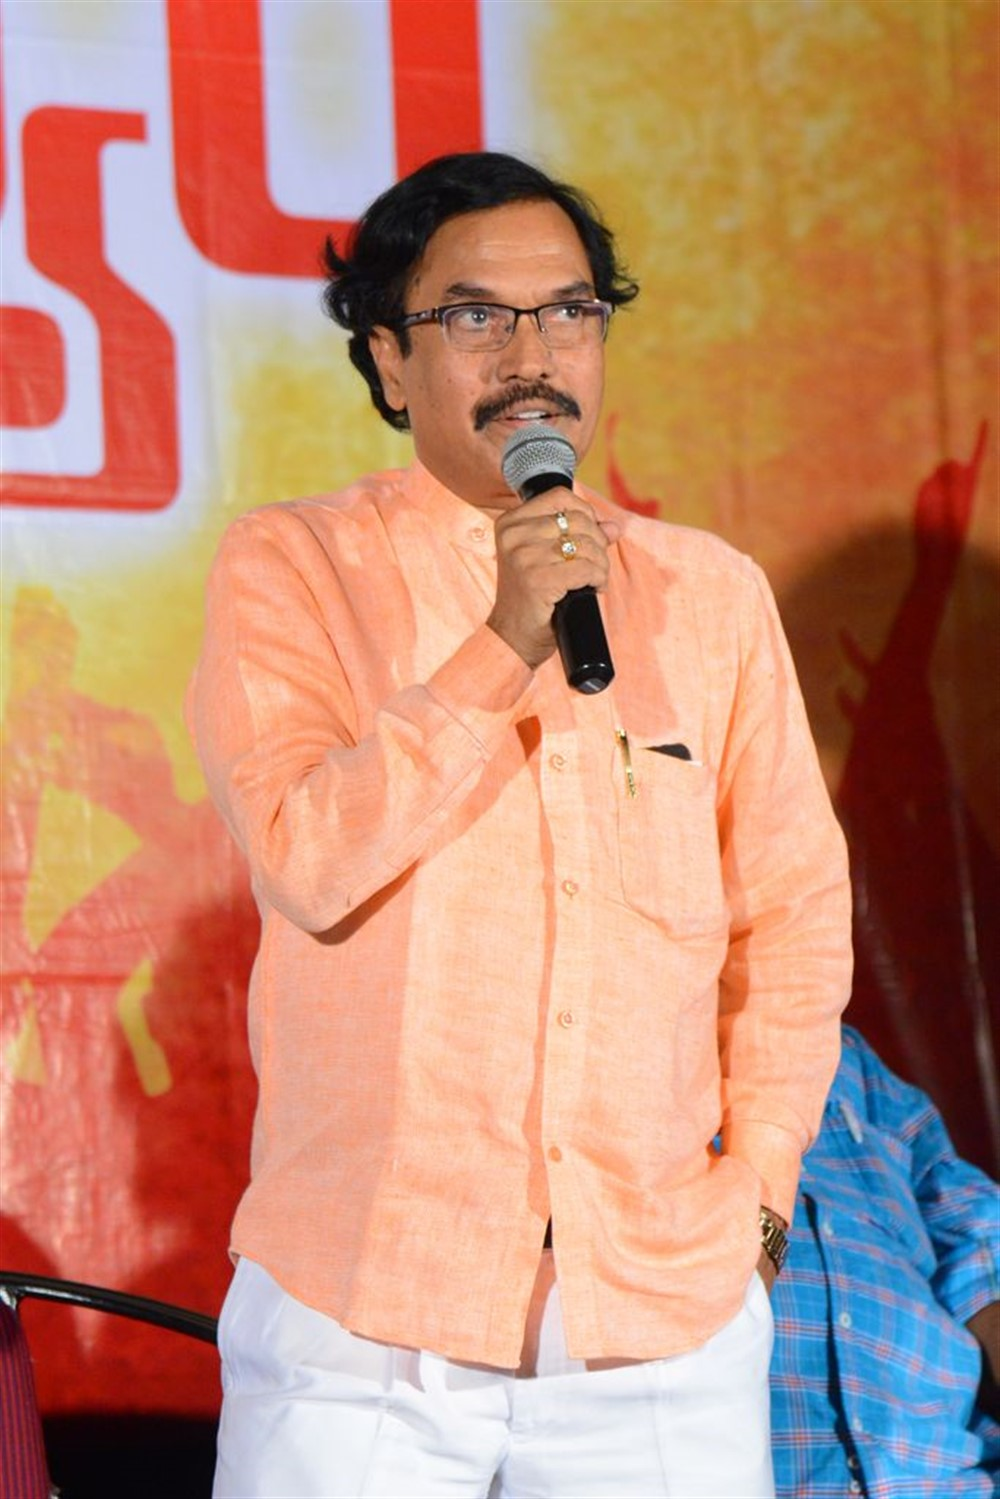 Suddala Ashok Teja @ Marketlo Prajaswamyam Audio Launch Stills